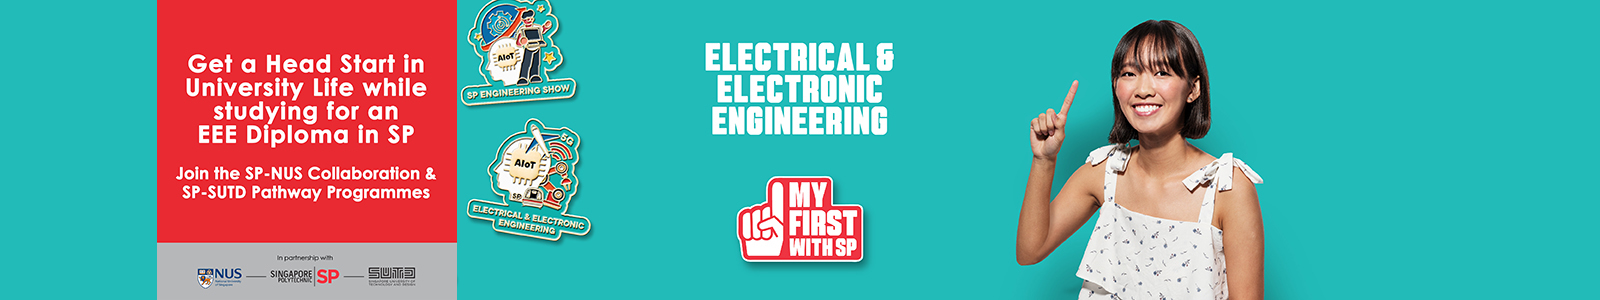 ENGG web banner background_SUTD_NUS